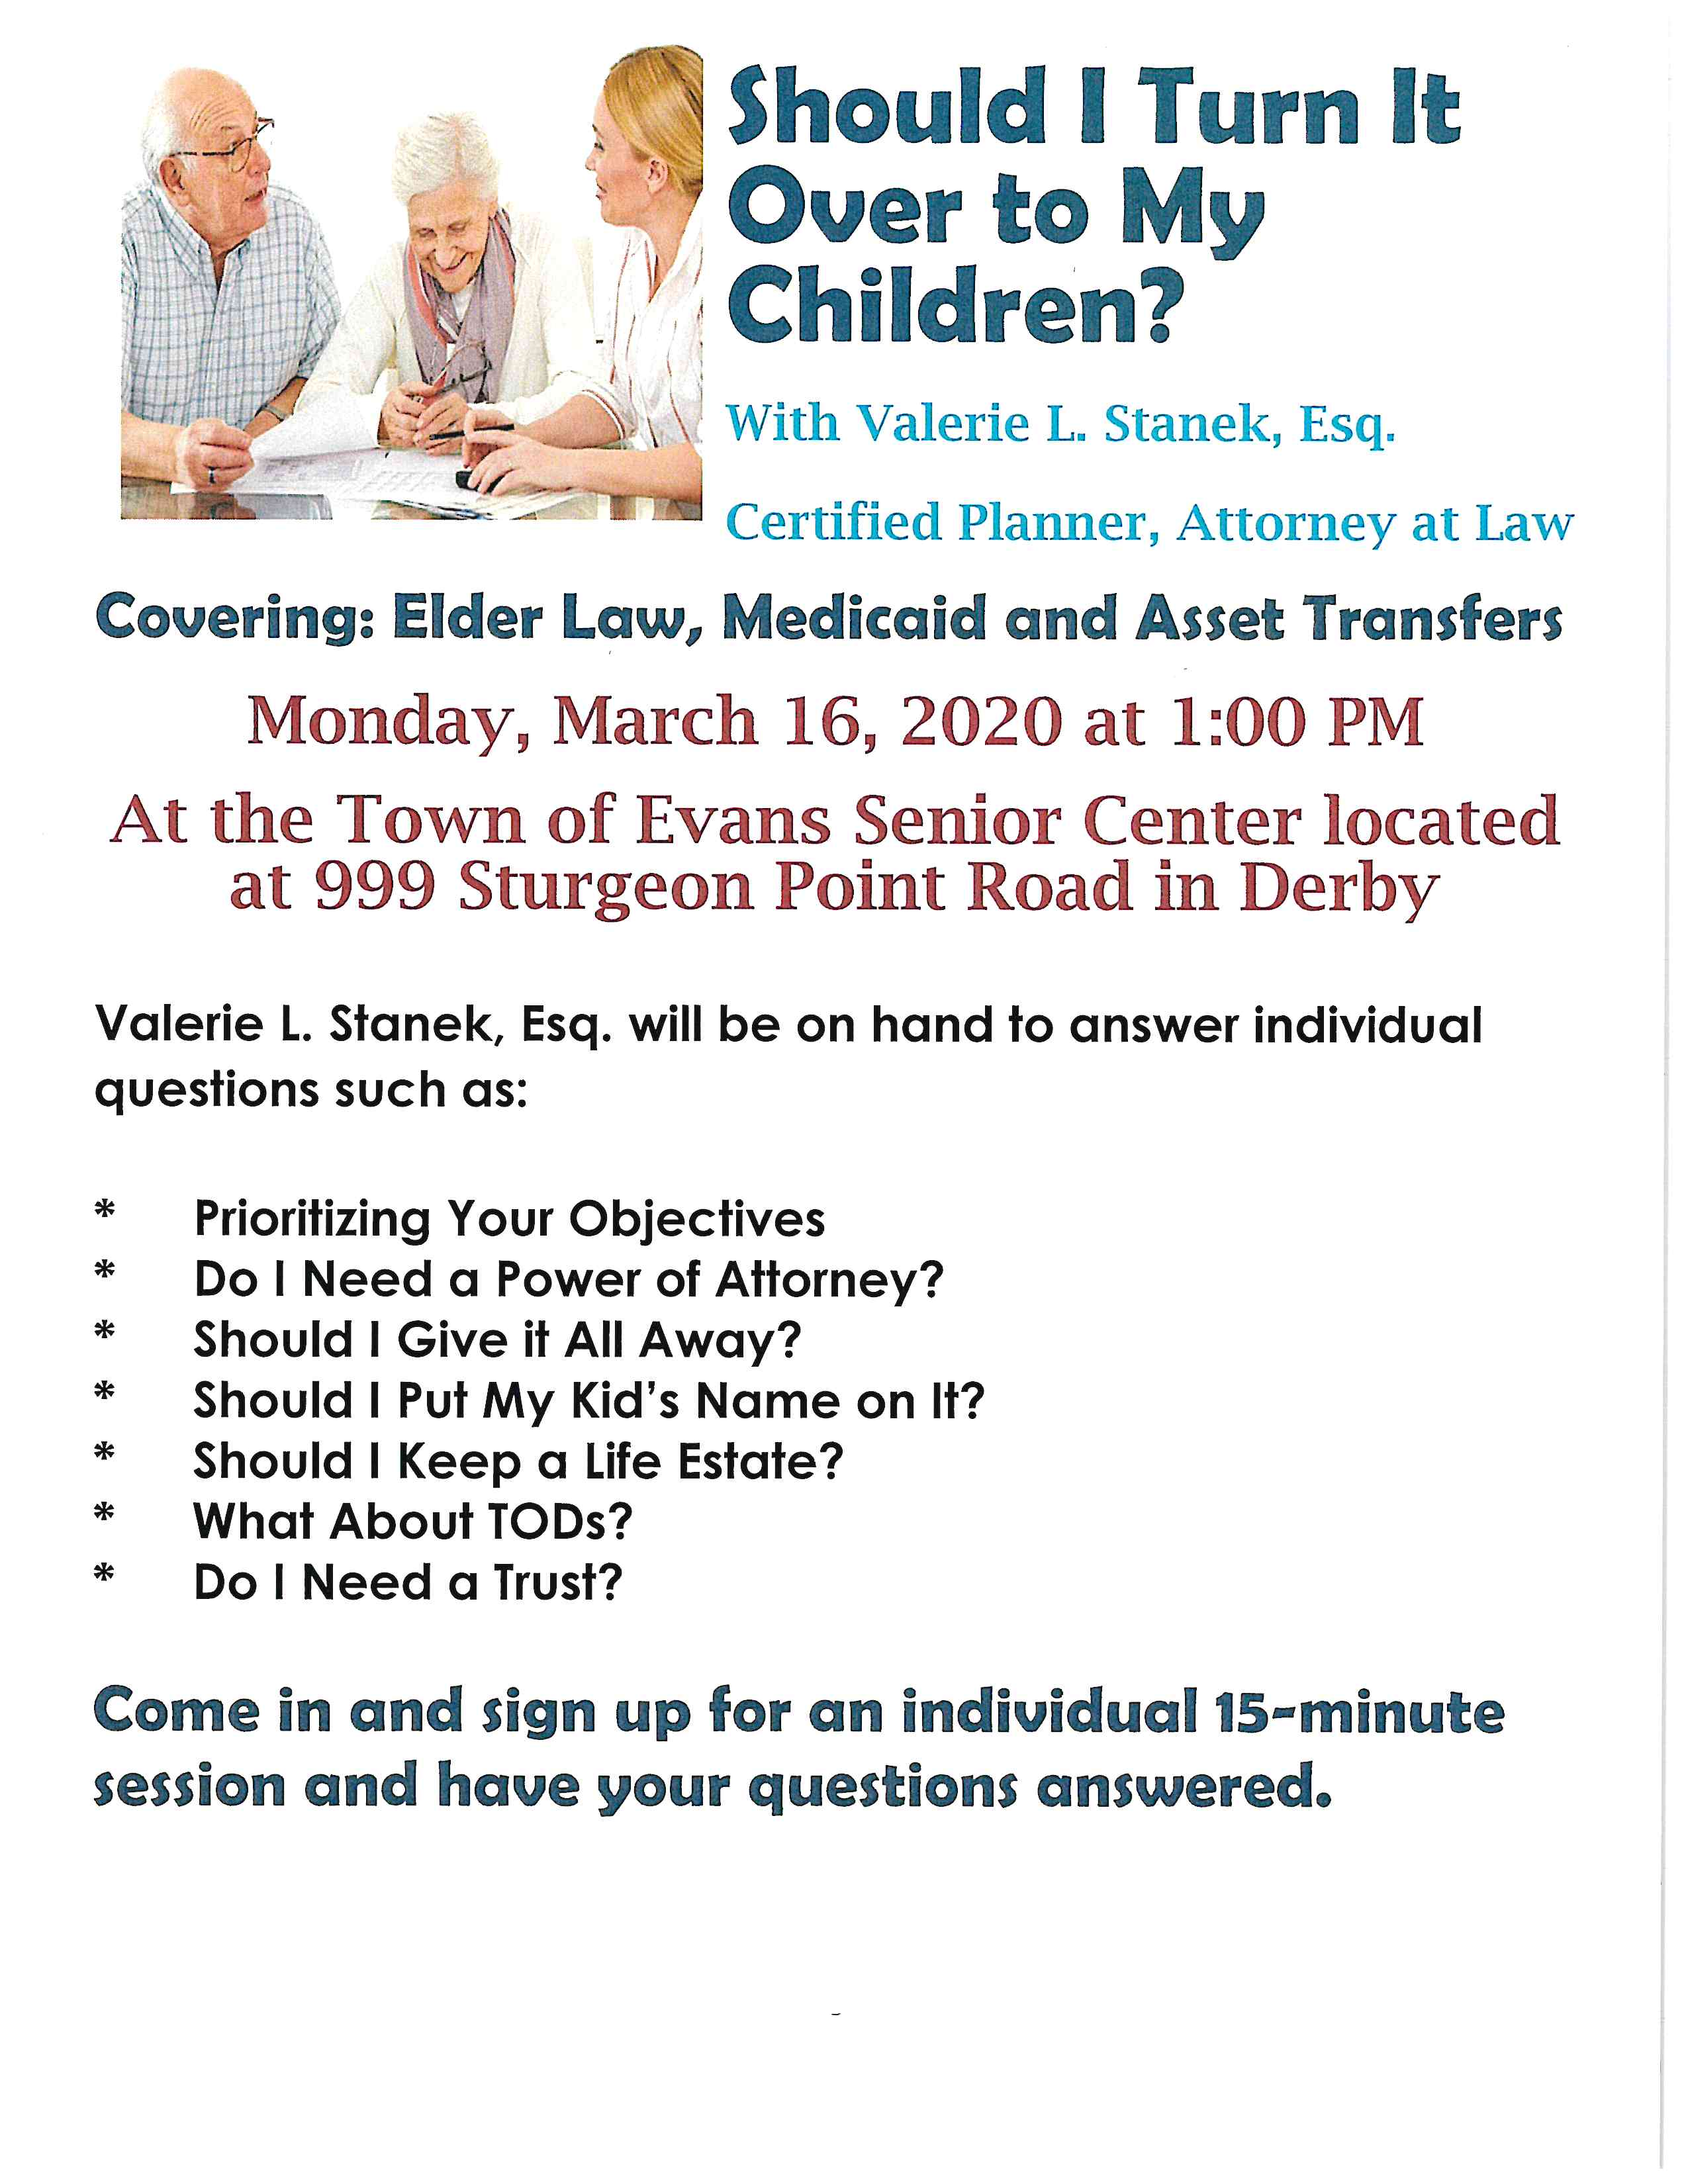 Elder Law Medicaid Asset Transfers 2020 03 16